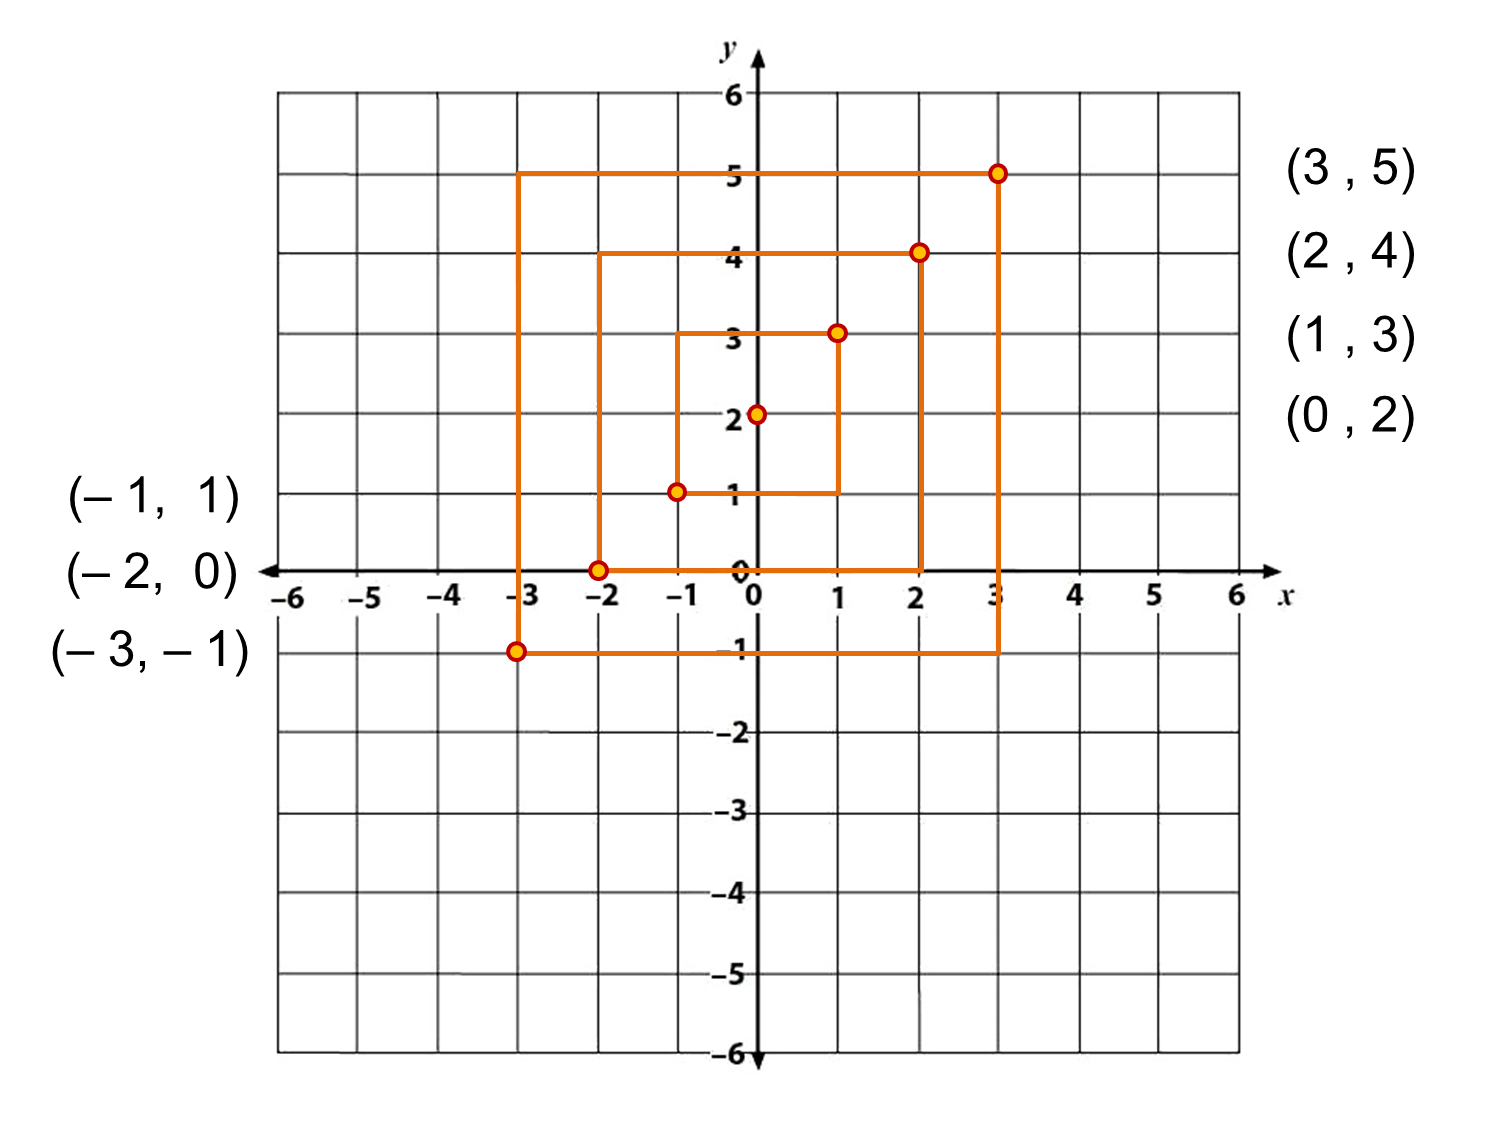 worksheet Graph With 4 Quadrants coordinate graphing pictures printable graph contractor invoice grid 4 quadrants image of protractor number operations picture3 quadrantshtml pict